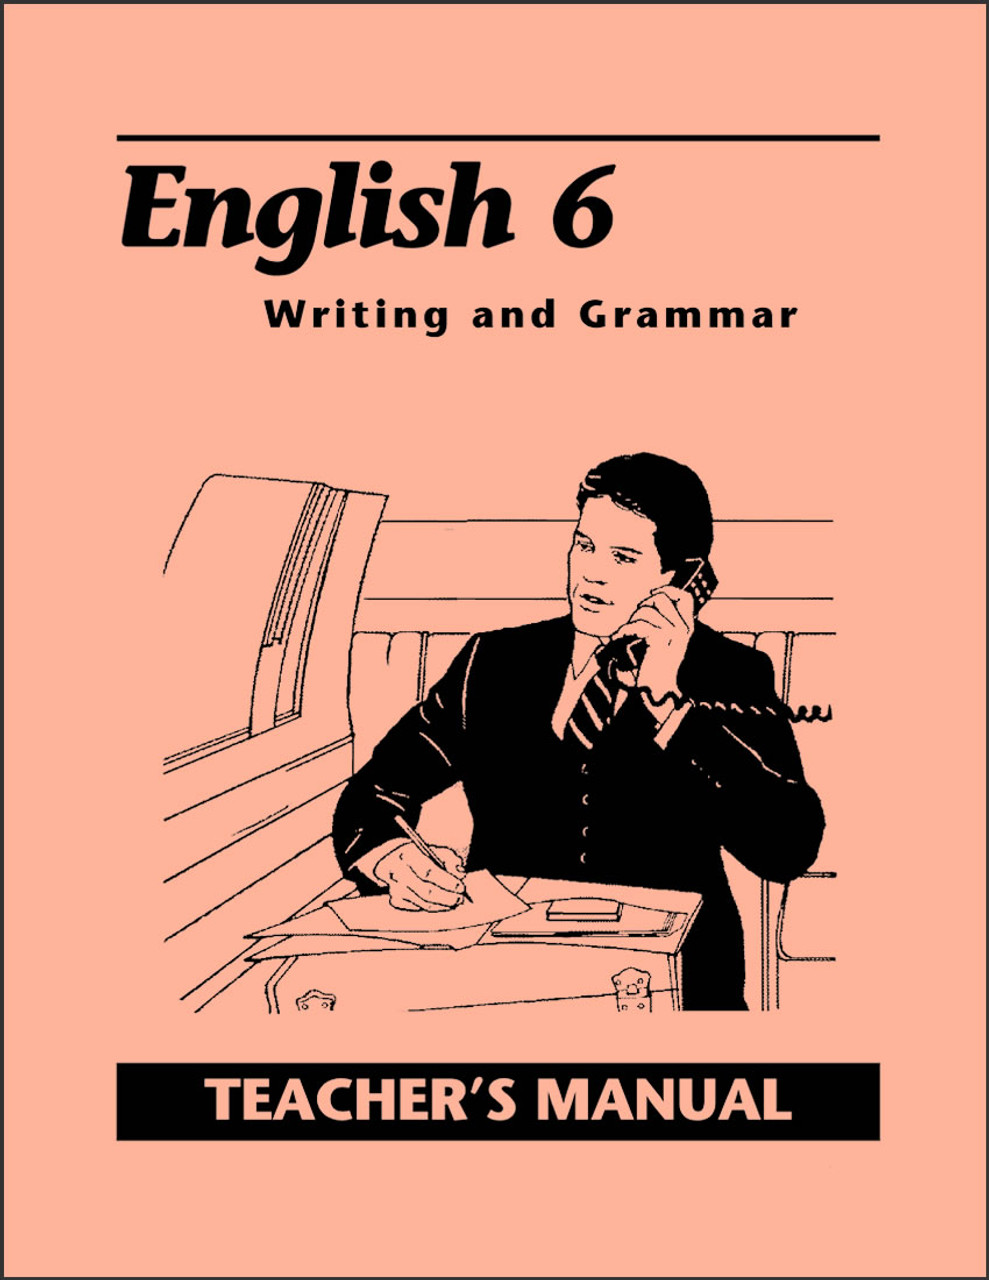 English 6: Writing and Grammar, 2nd edition - Teacher's Manual